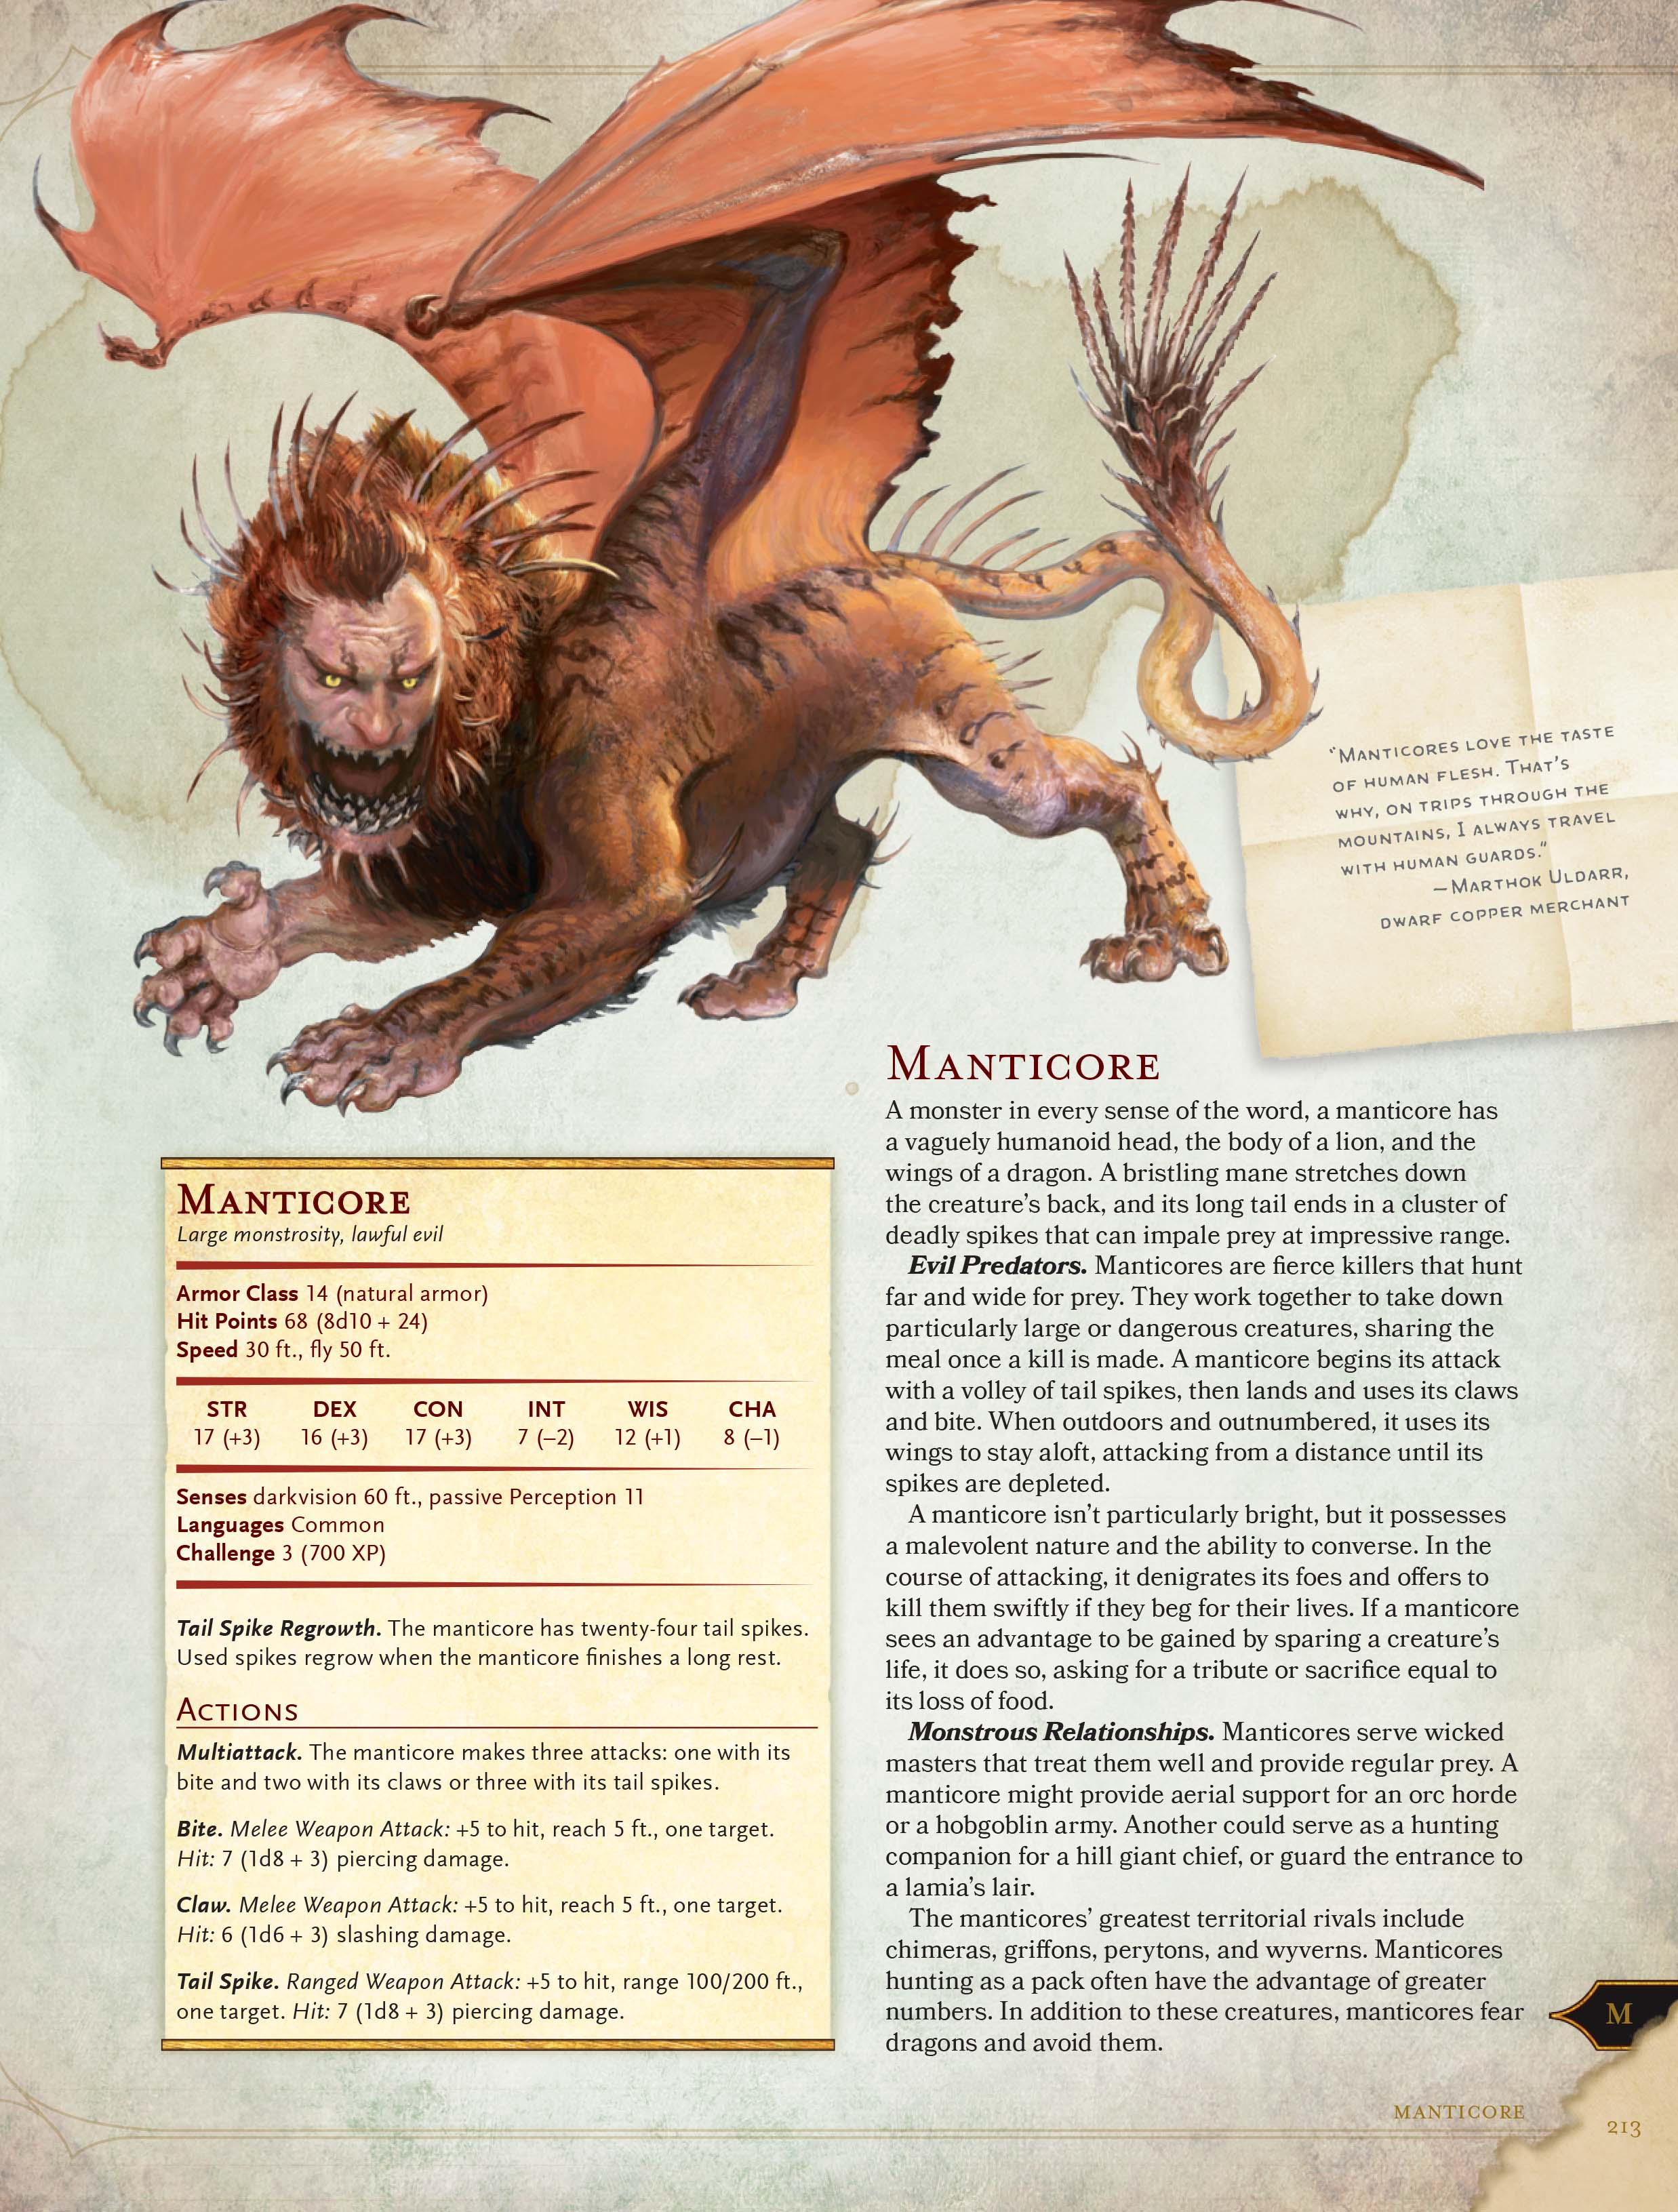 book review u201cmonster manual for dungeons dragons 5th edition is rh marcusgohmarcusgoh com Monster Manual II Monster Manual II